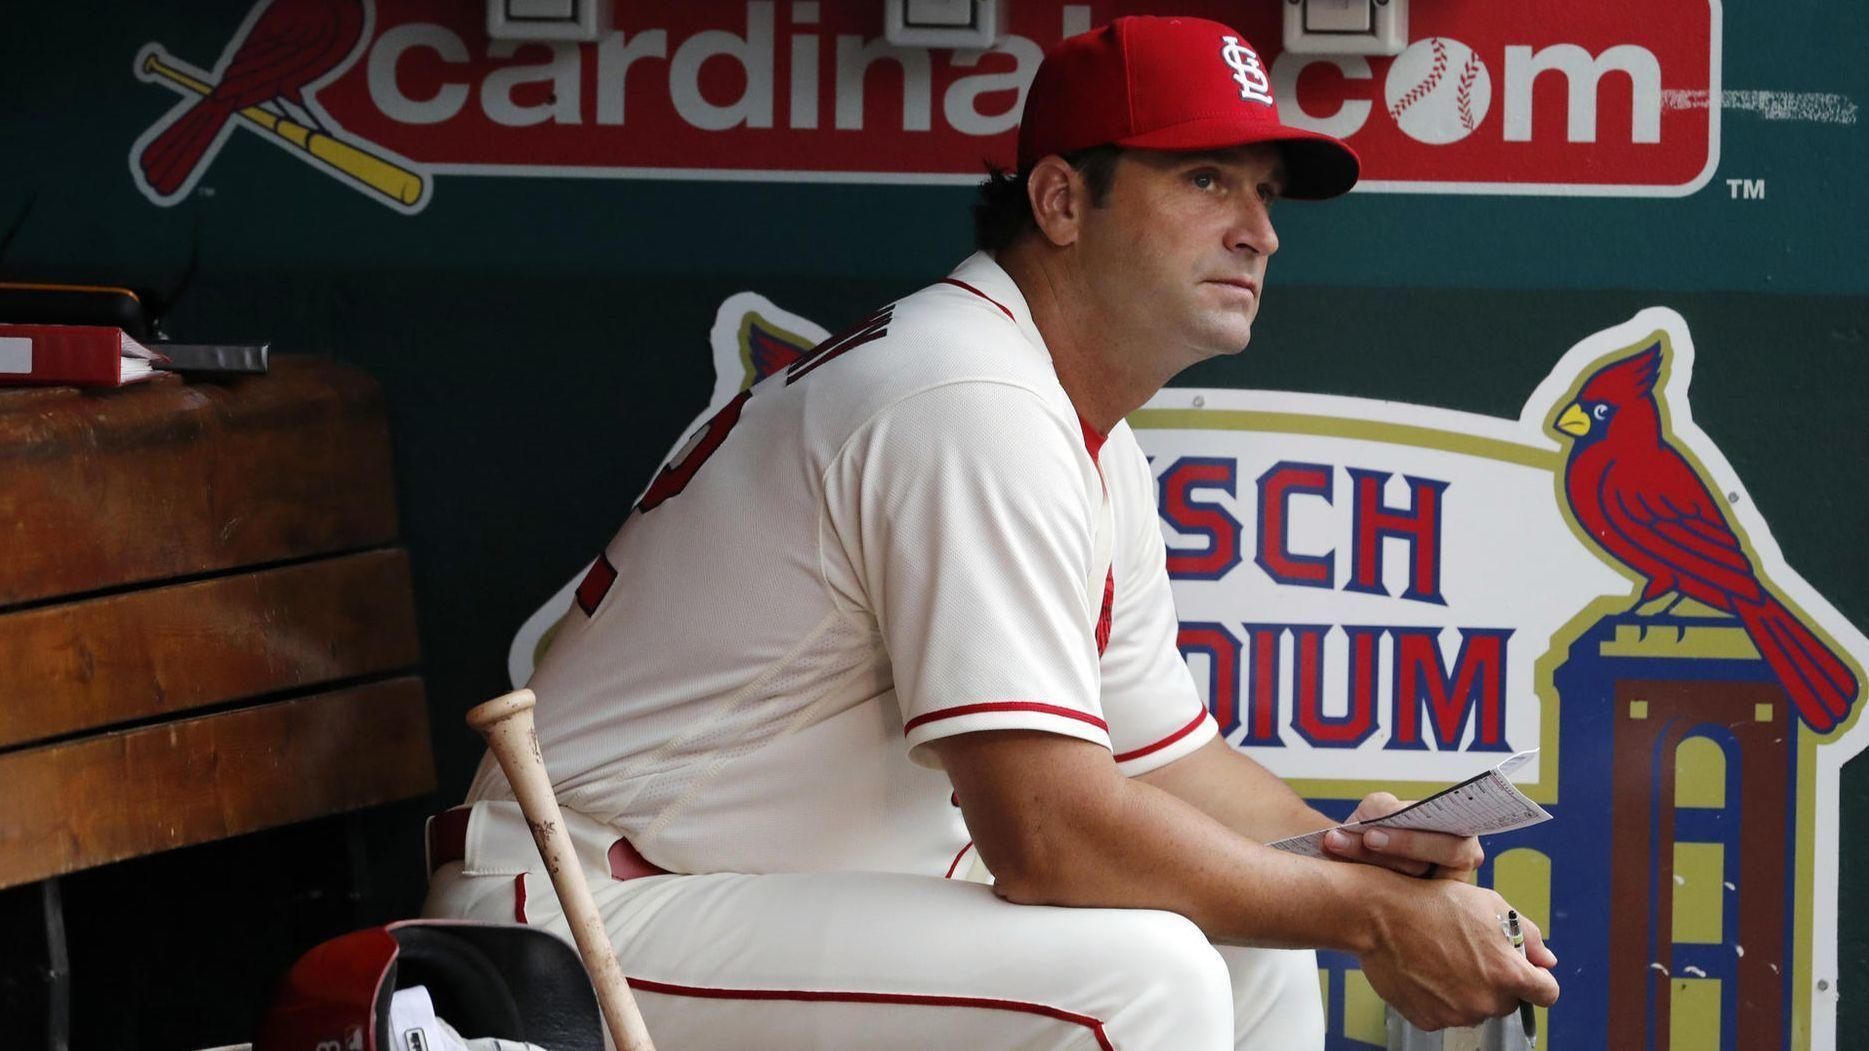 Ct-spt-cardinals-clubhouse-police-mlb-notes-20180714